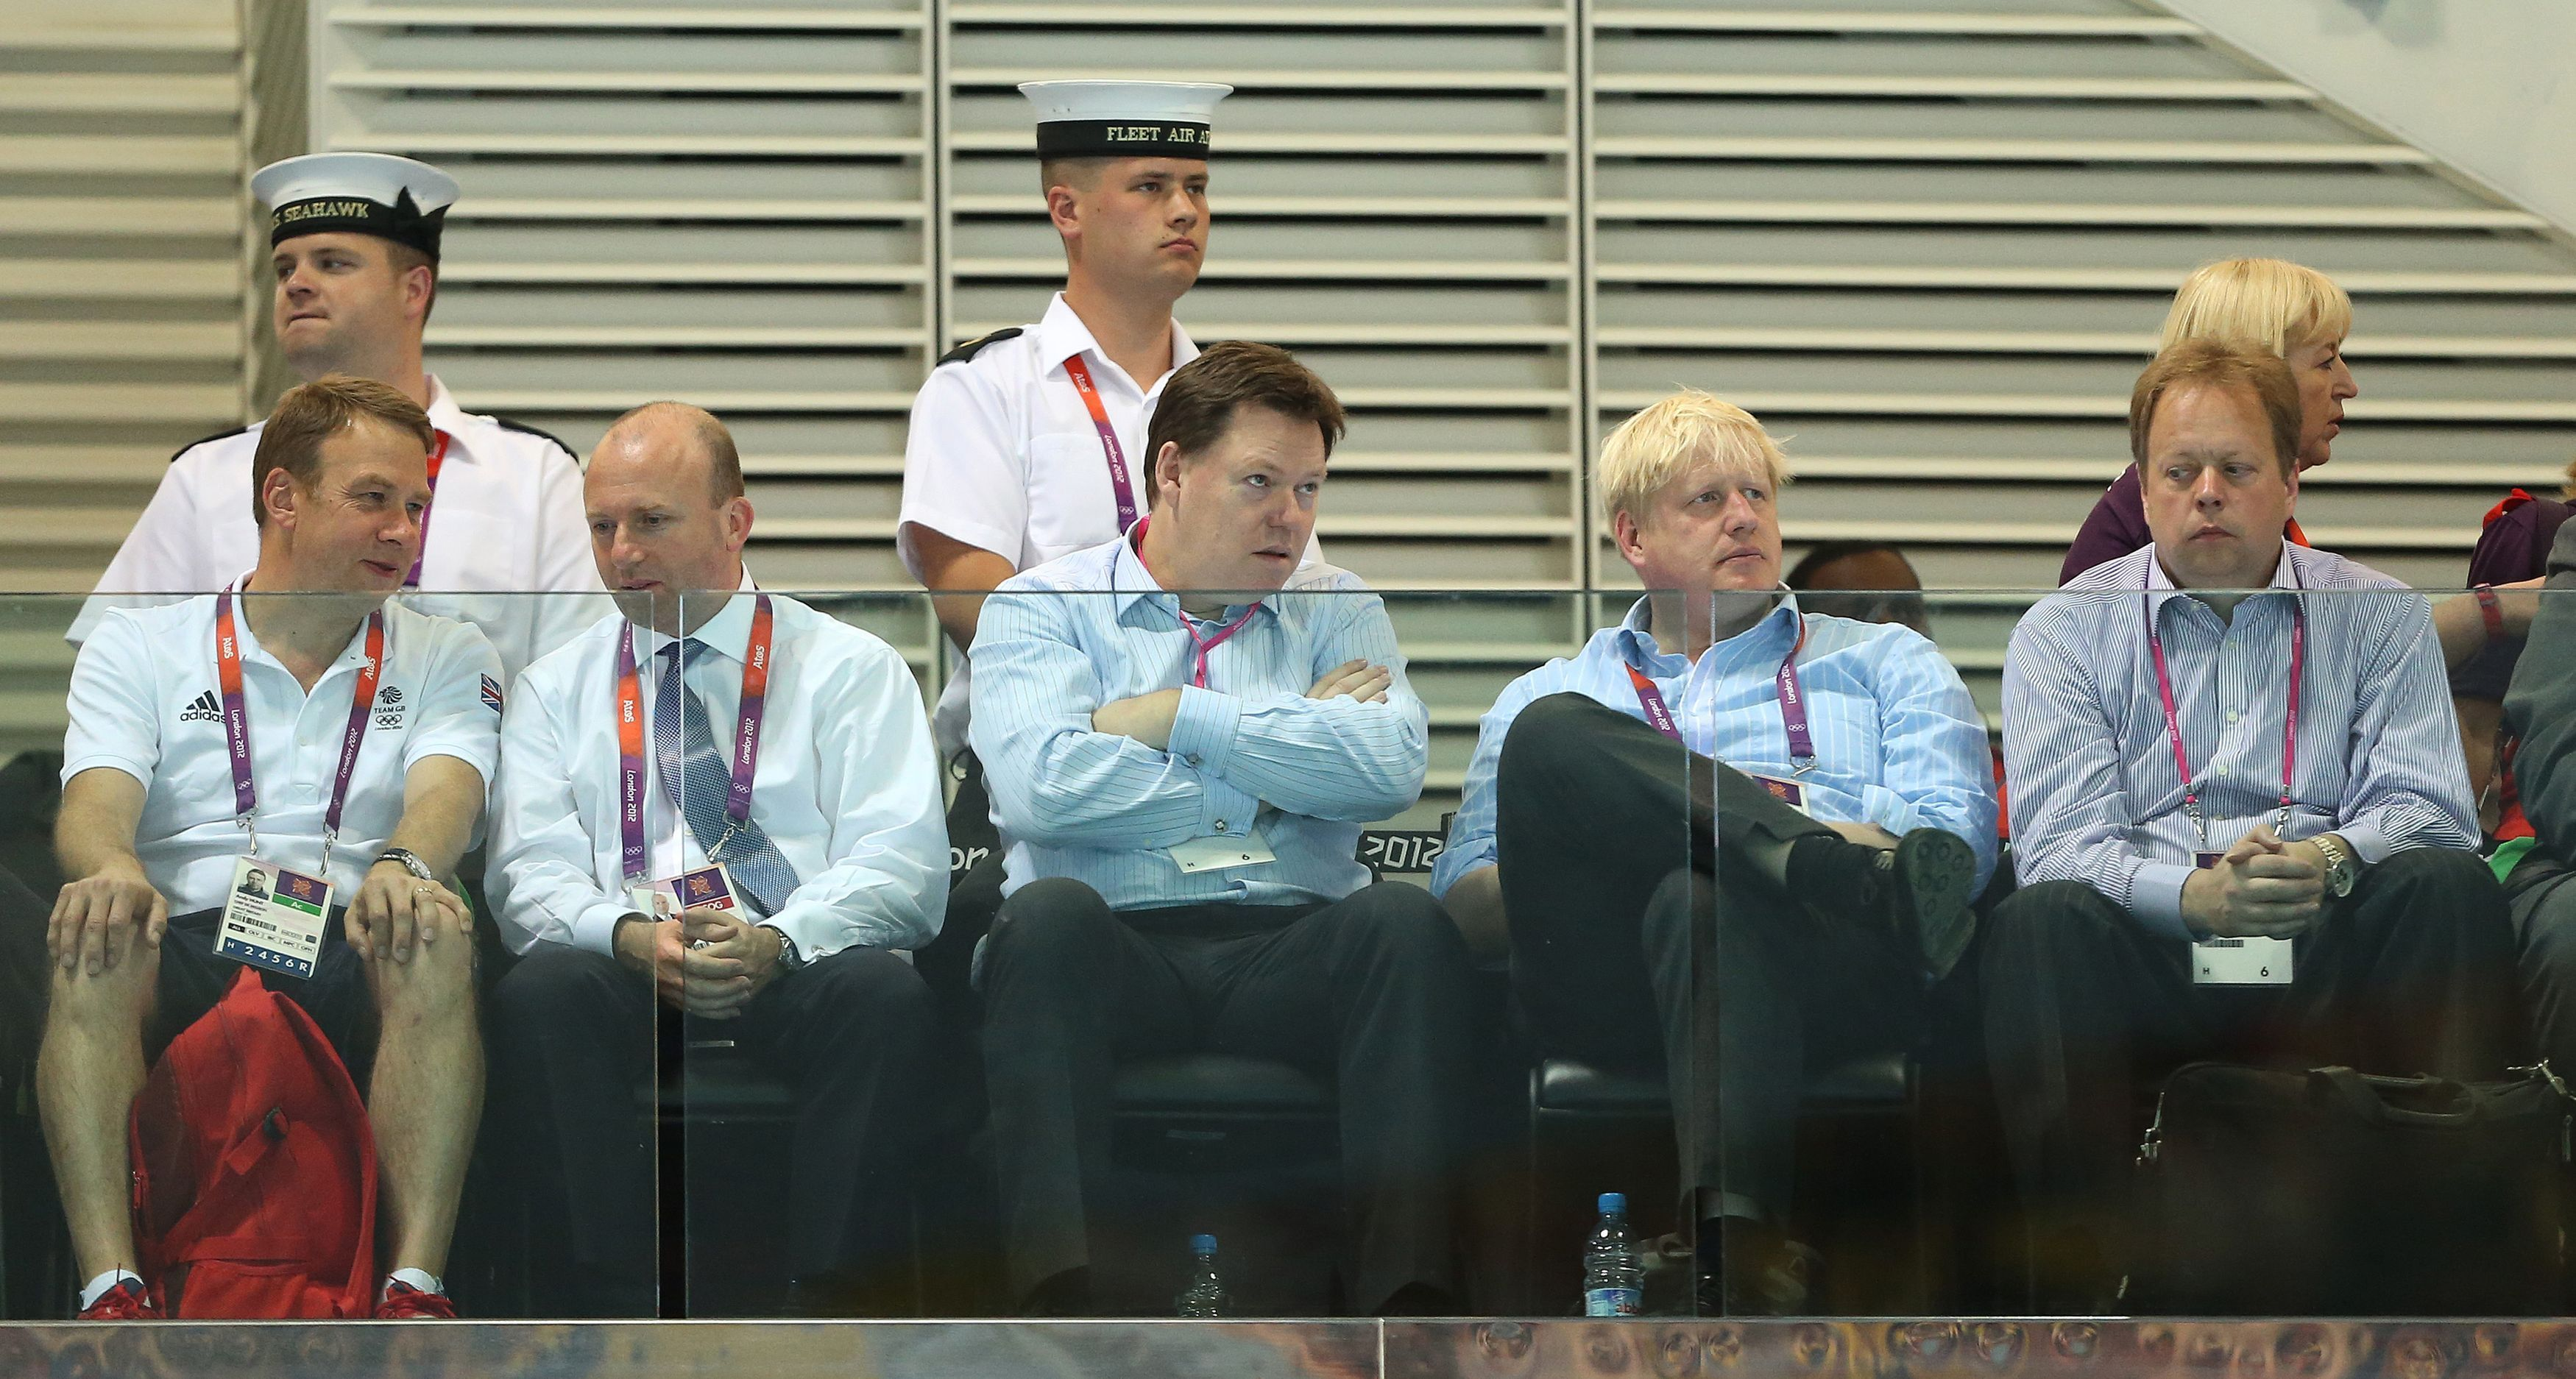 Mayor of London Boris Johnson (second right) watches Great Britain's Tom Daley and Peter Waterfield compete in the Men's Synchronised 10m Platform competition at the Aquatics Centre in the Olympics Park during the third day of the London 2012 Olympics.